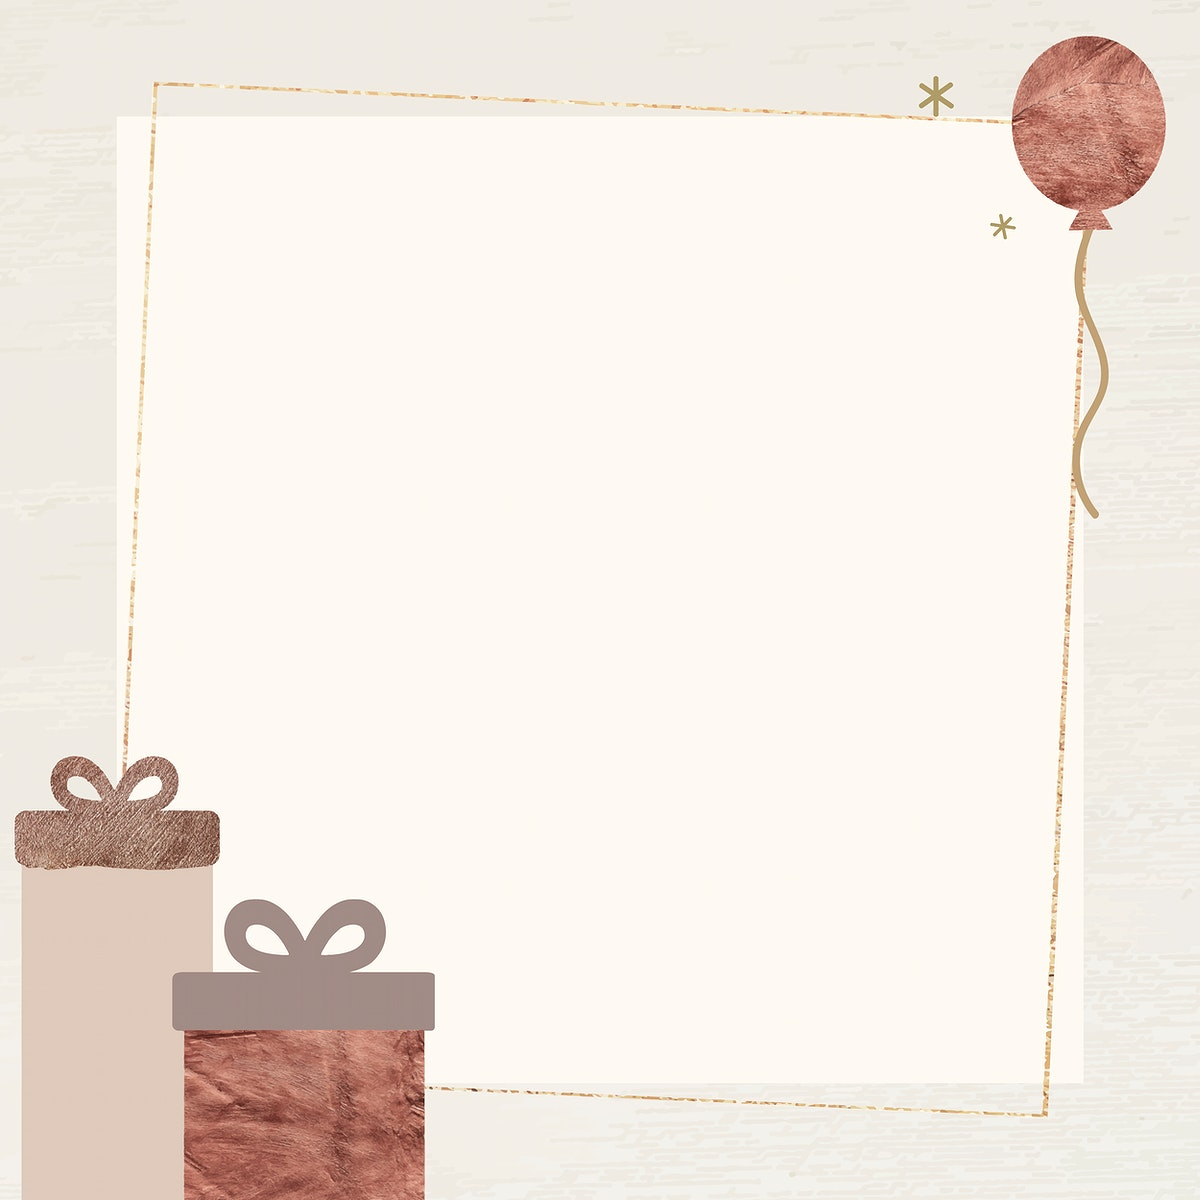 New Year gift boxes and ballon with shimmering star lights frame design vector